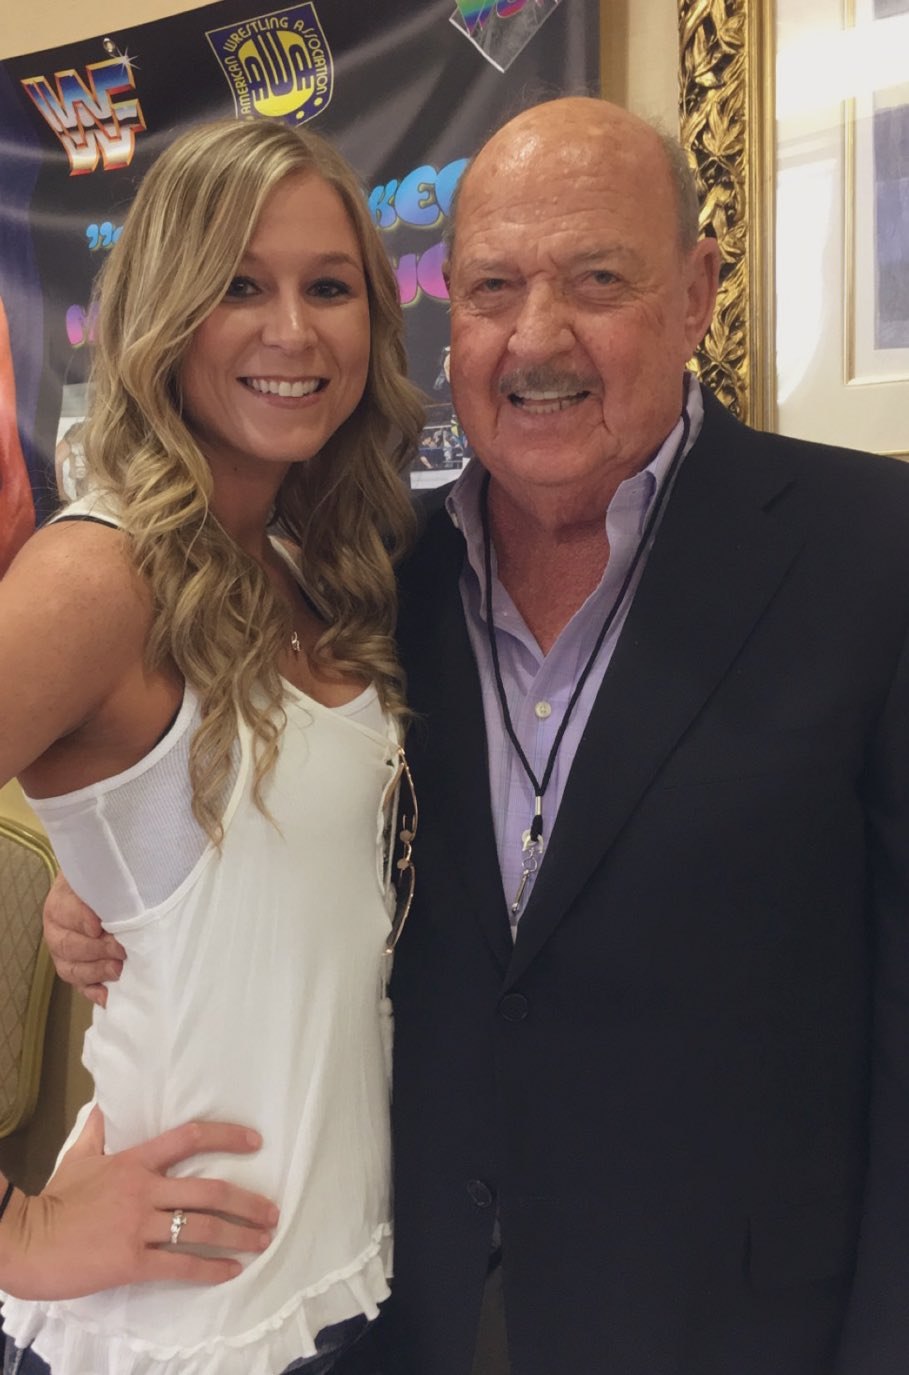 Whitney McCallister, and Mean Gene Okerlund